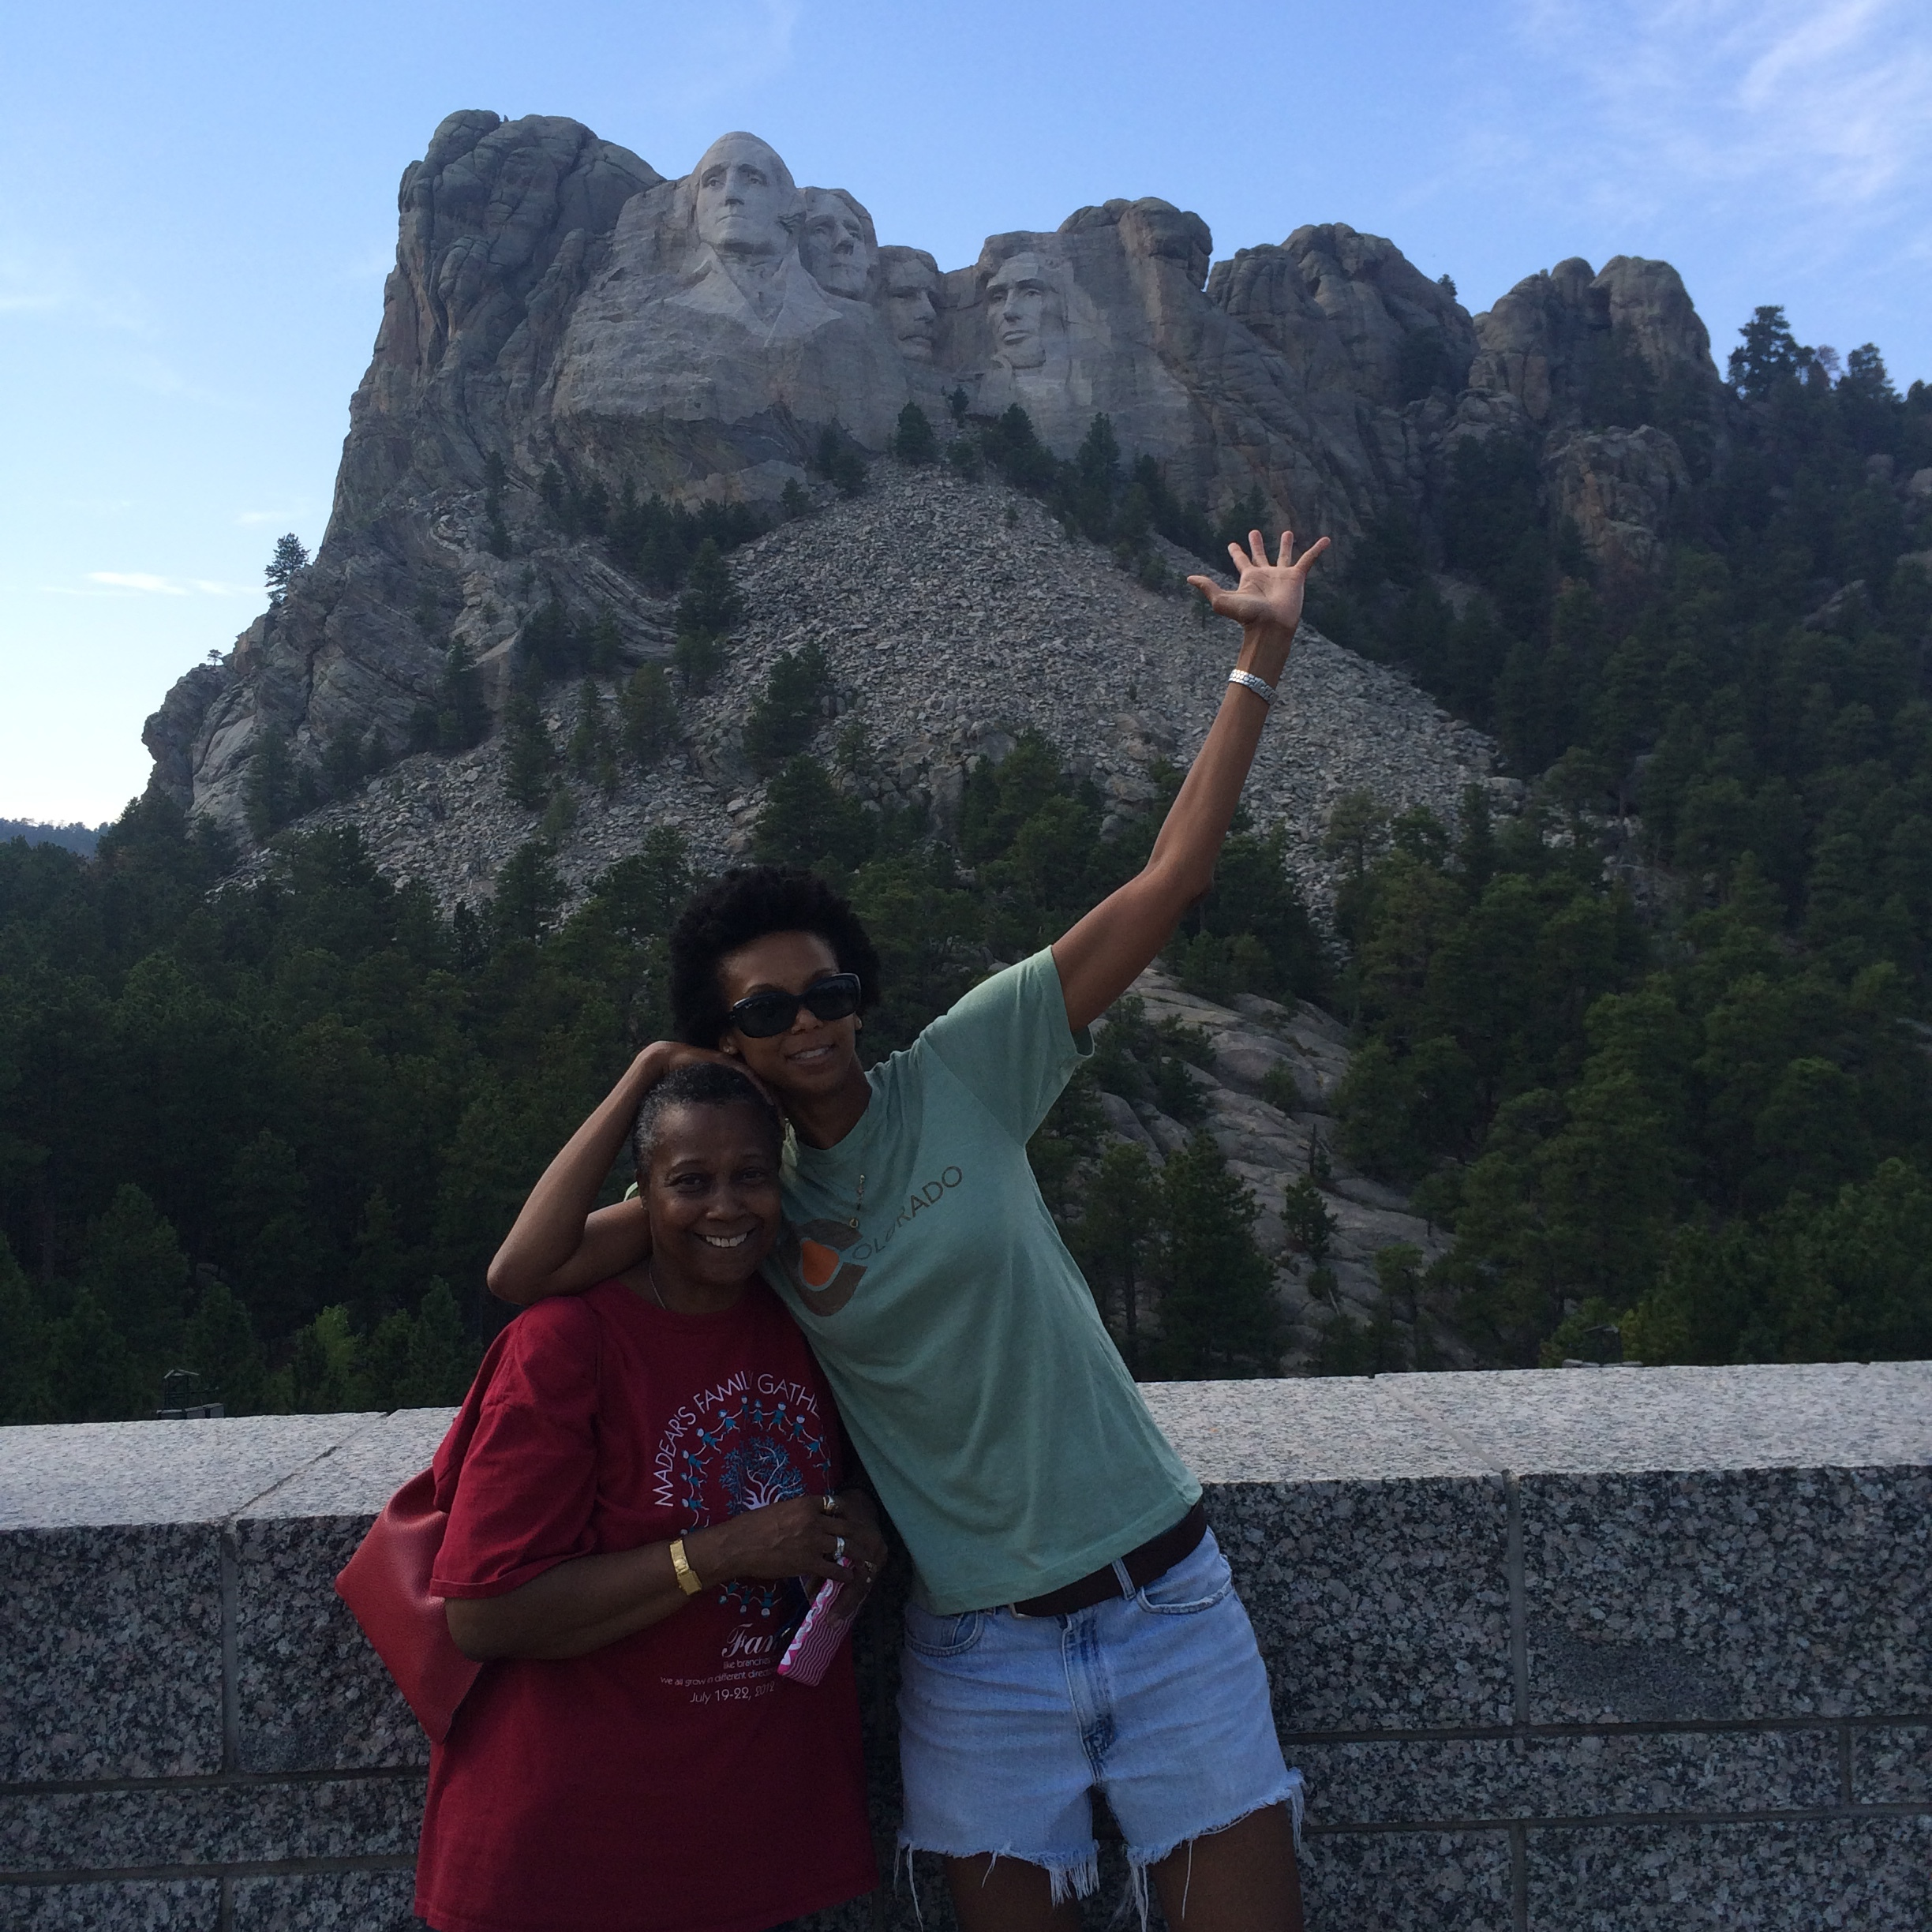 With Moma T at Mt. Rushmore on the drive out.